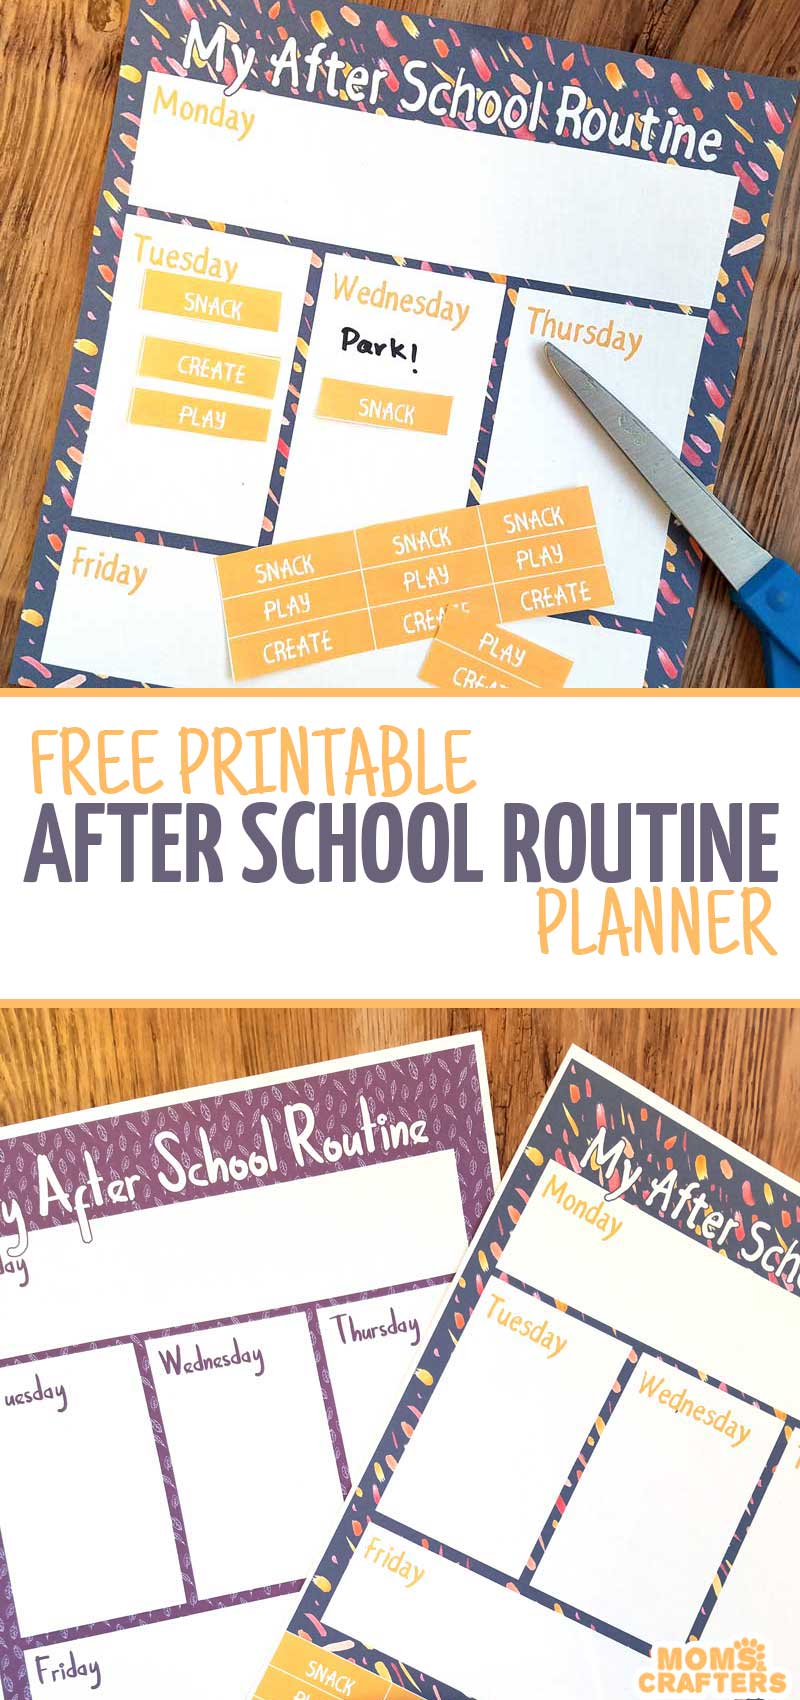 Get control over your preschooler's after school routine with these fun free printable after school routine planners! Two versions - one for toddlers and preschool and one for grade school kids - this parenting organization printable will help you plan ahead!